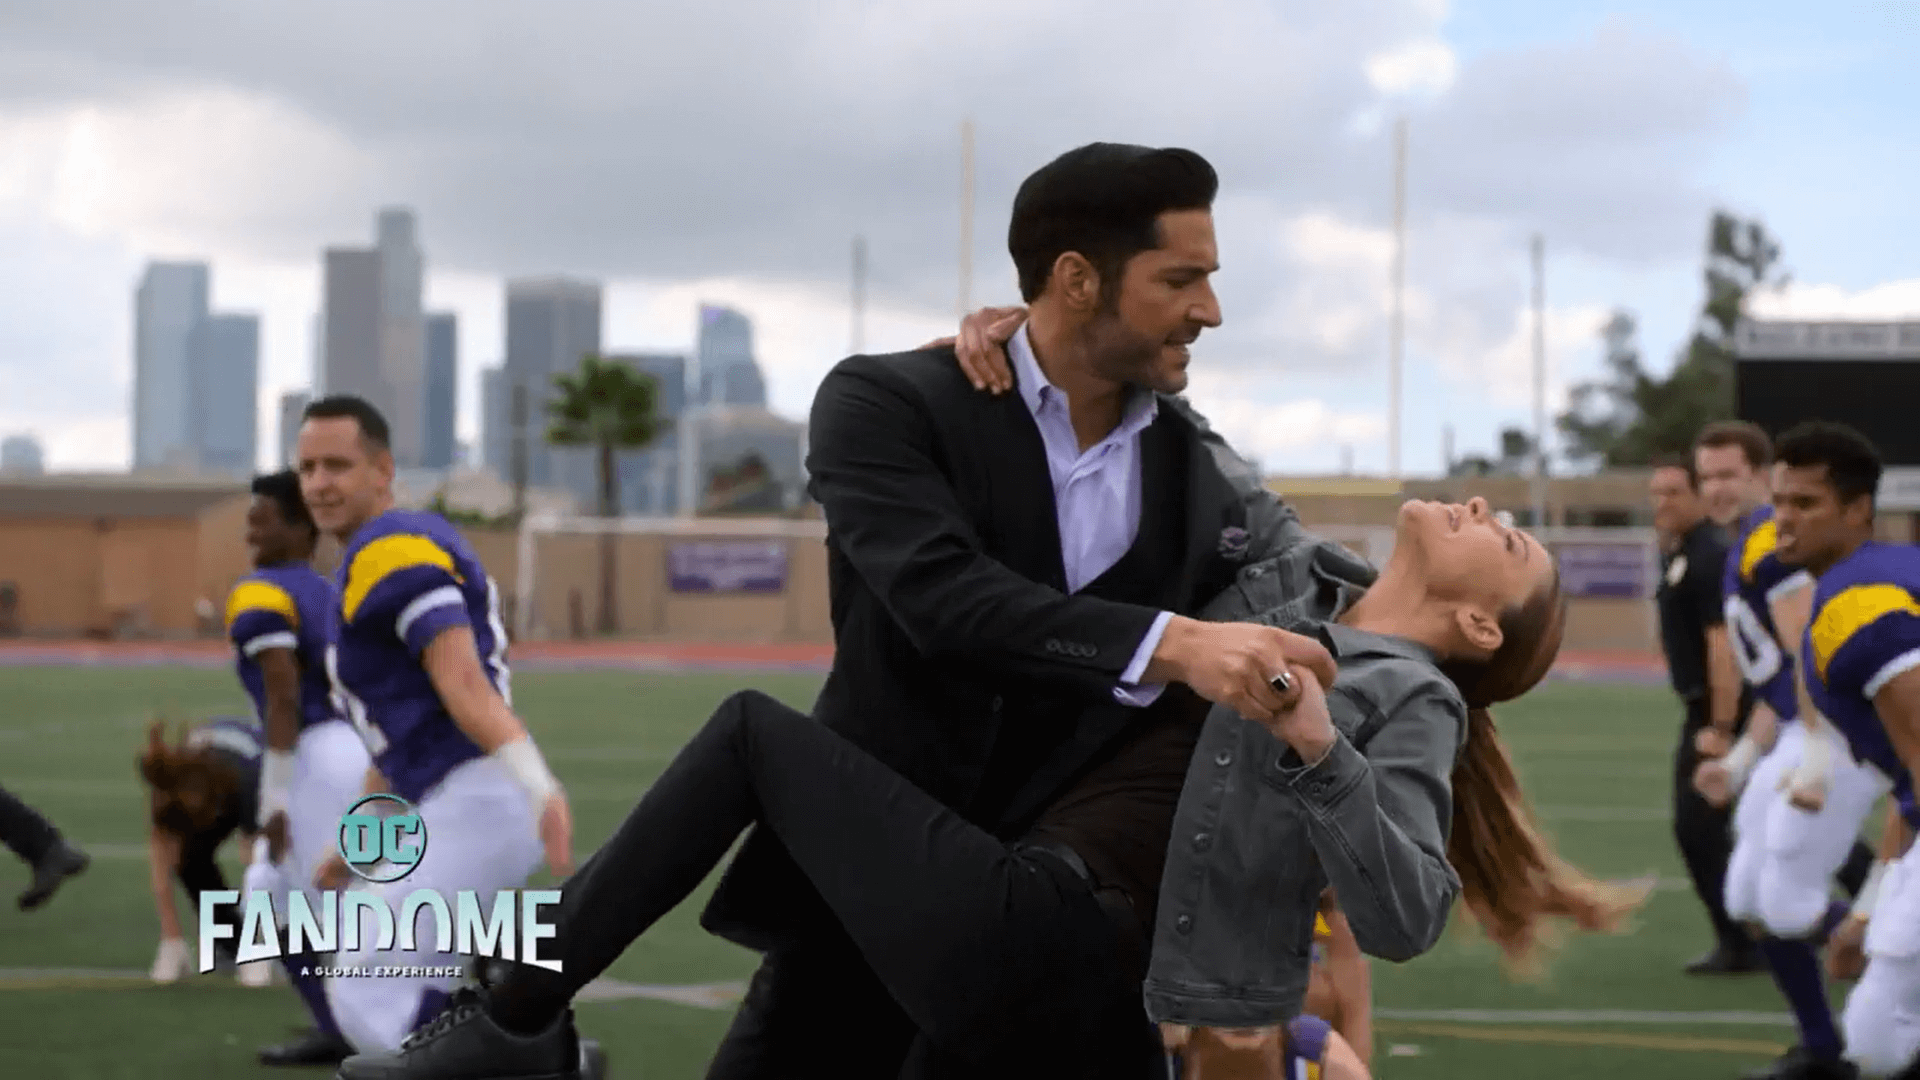 DC FanDome: Watch Lucifer & The Gang Sing & Dance for Show's Upcoming Musical Episode